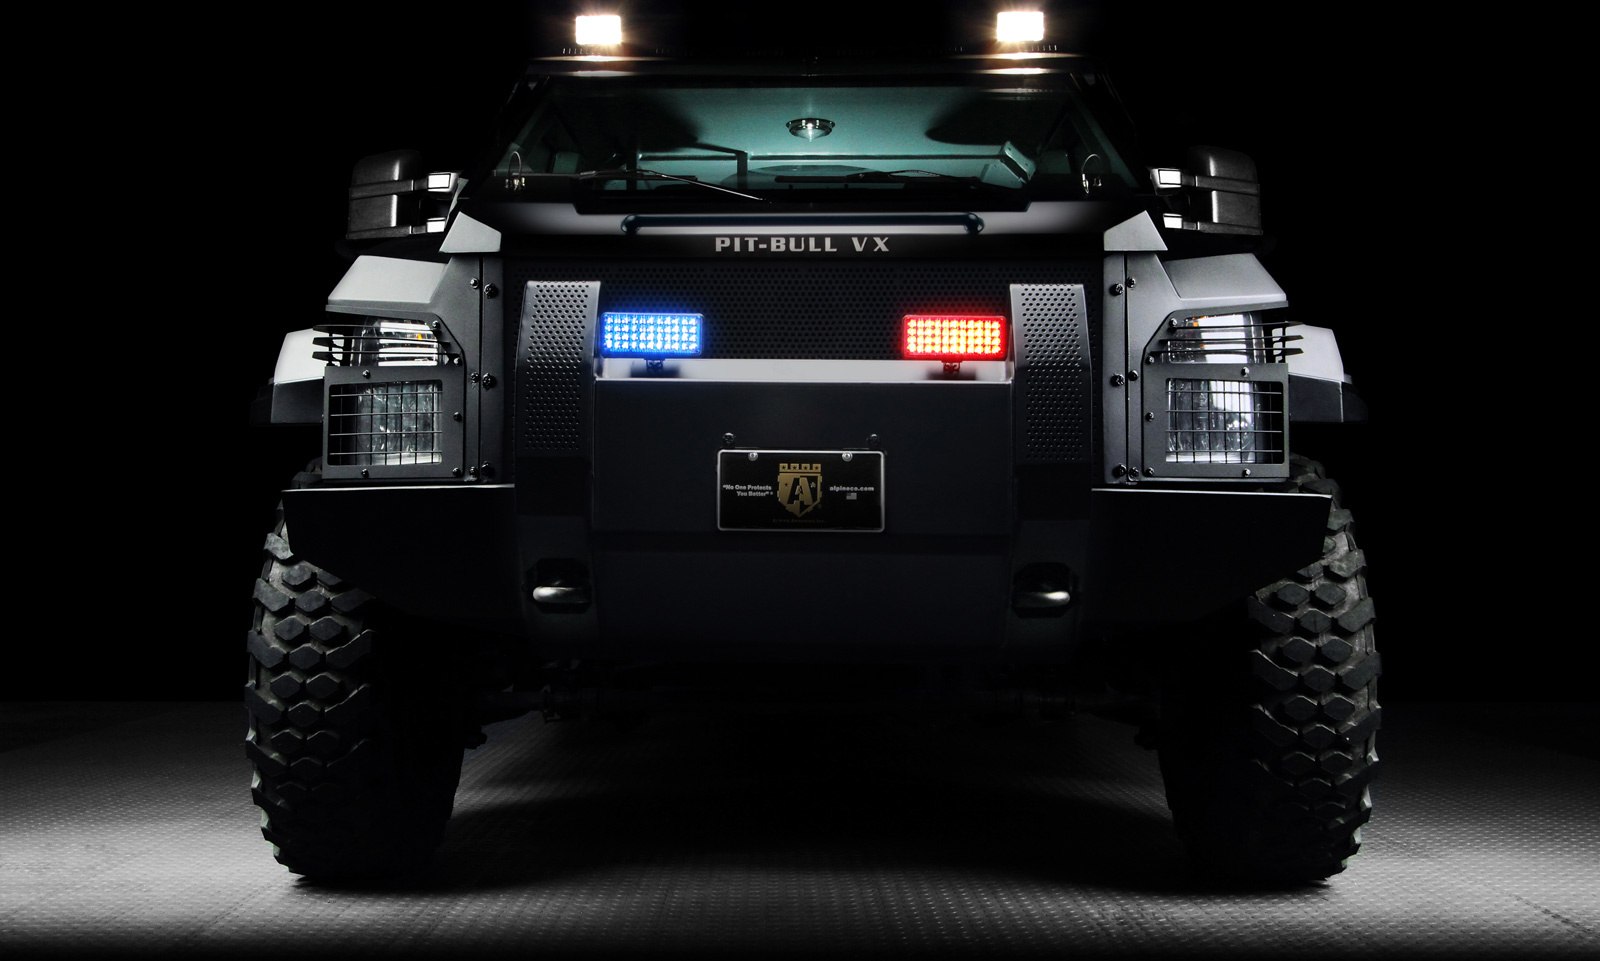 swat truck wallpaper full hd pictures